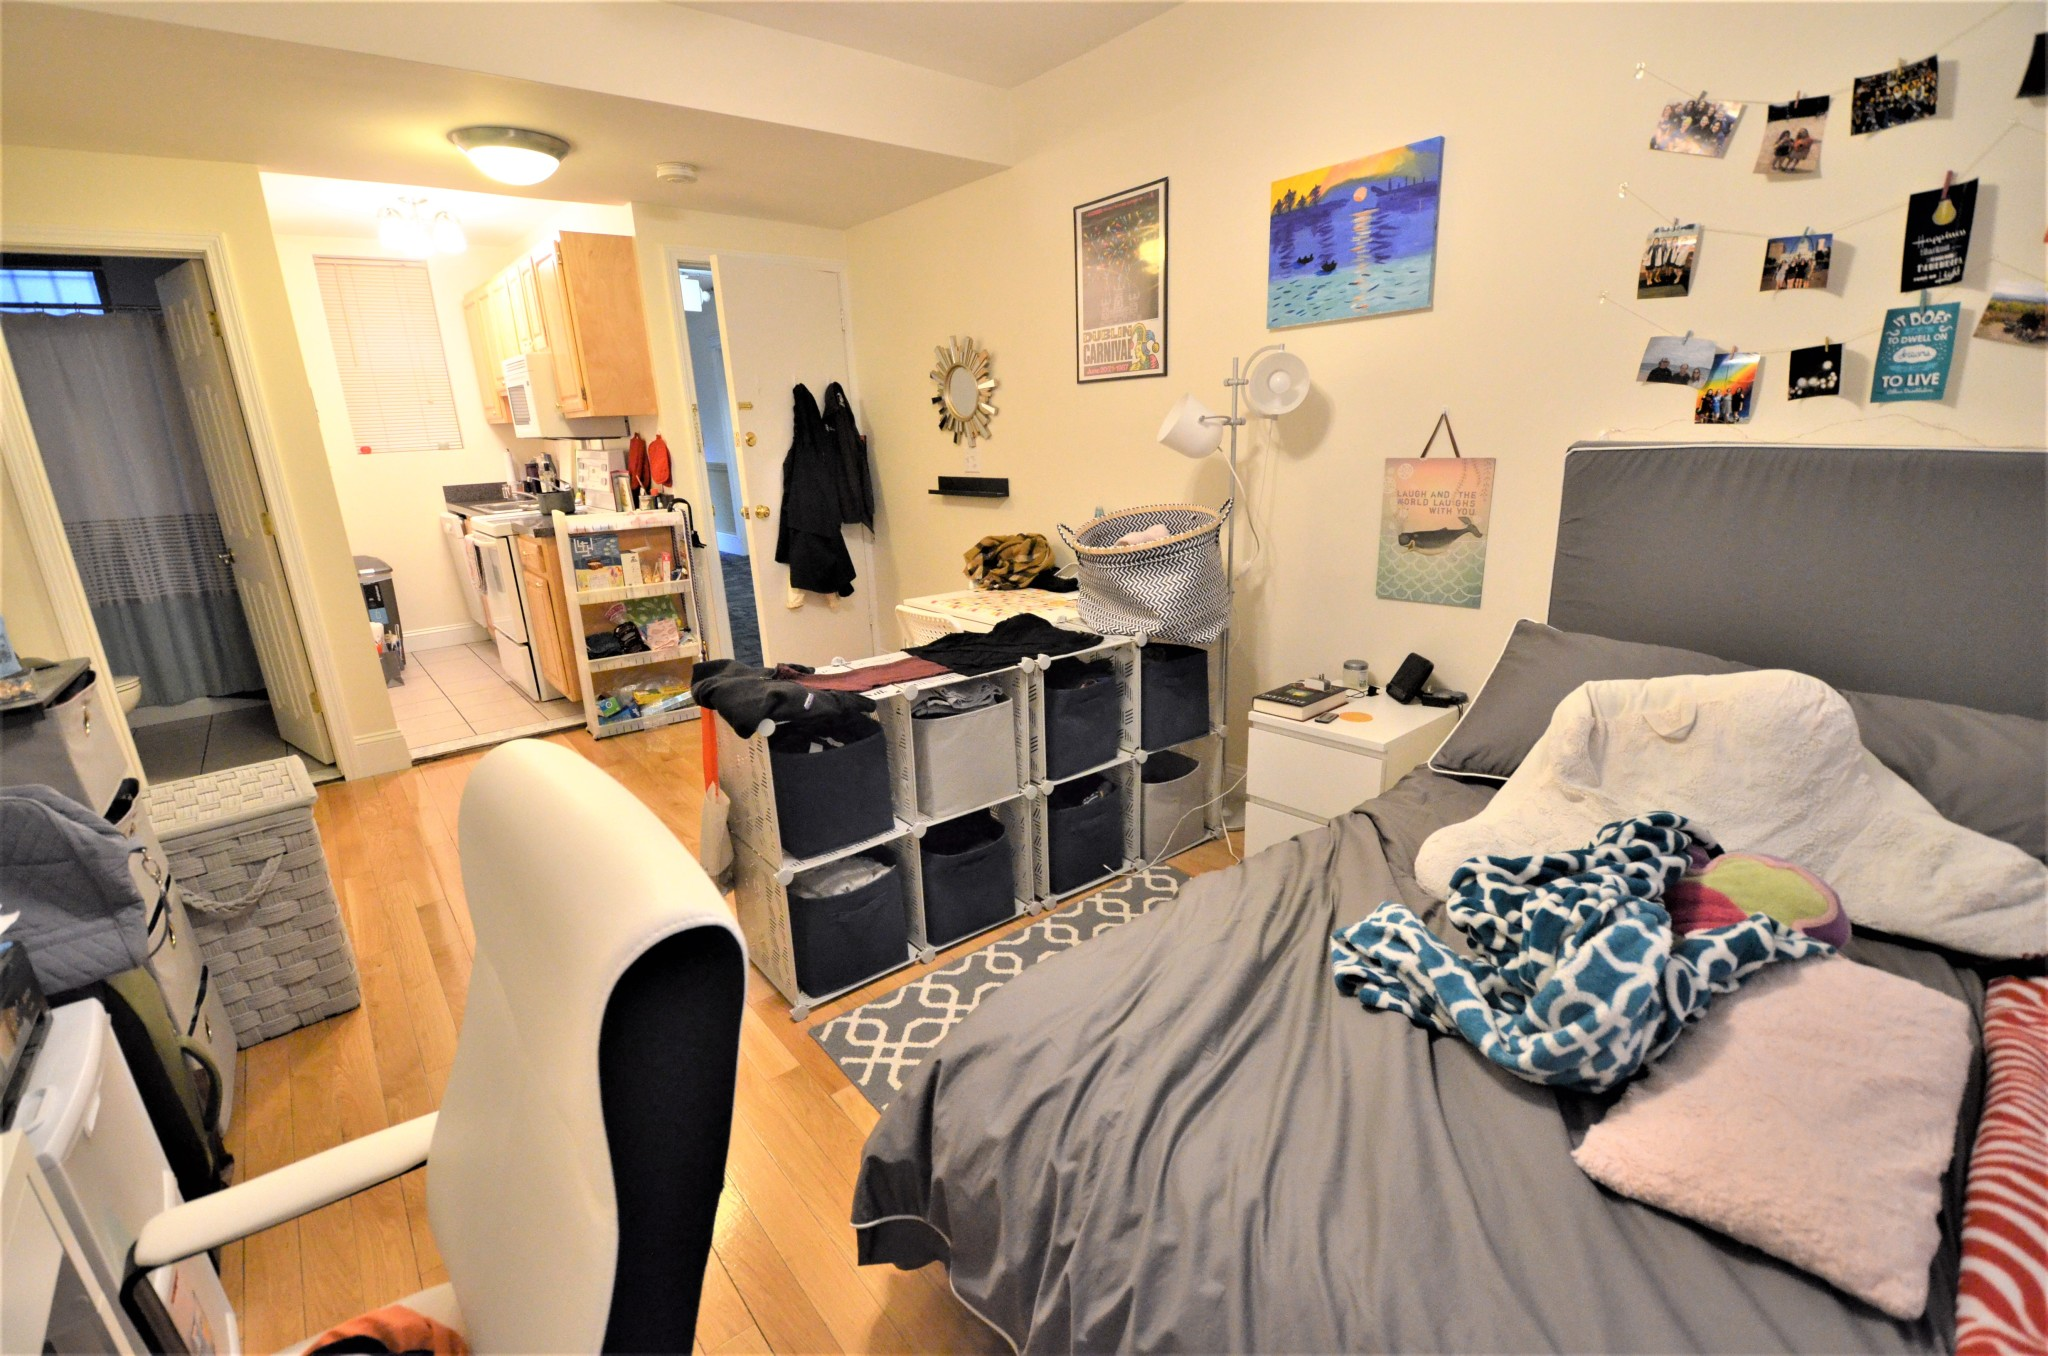 Avail 9/1 - Gorgeous, Renovated, Essential Studio on Haviland